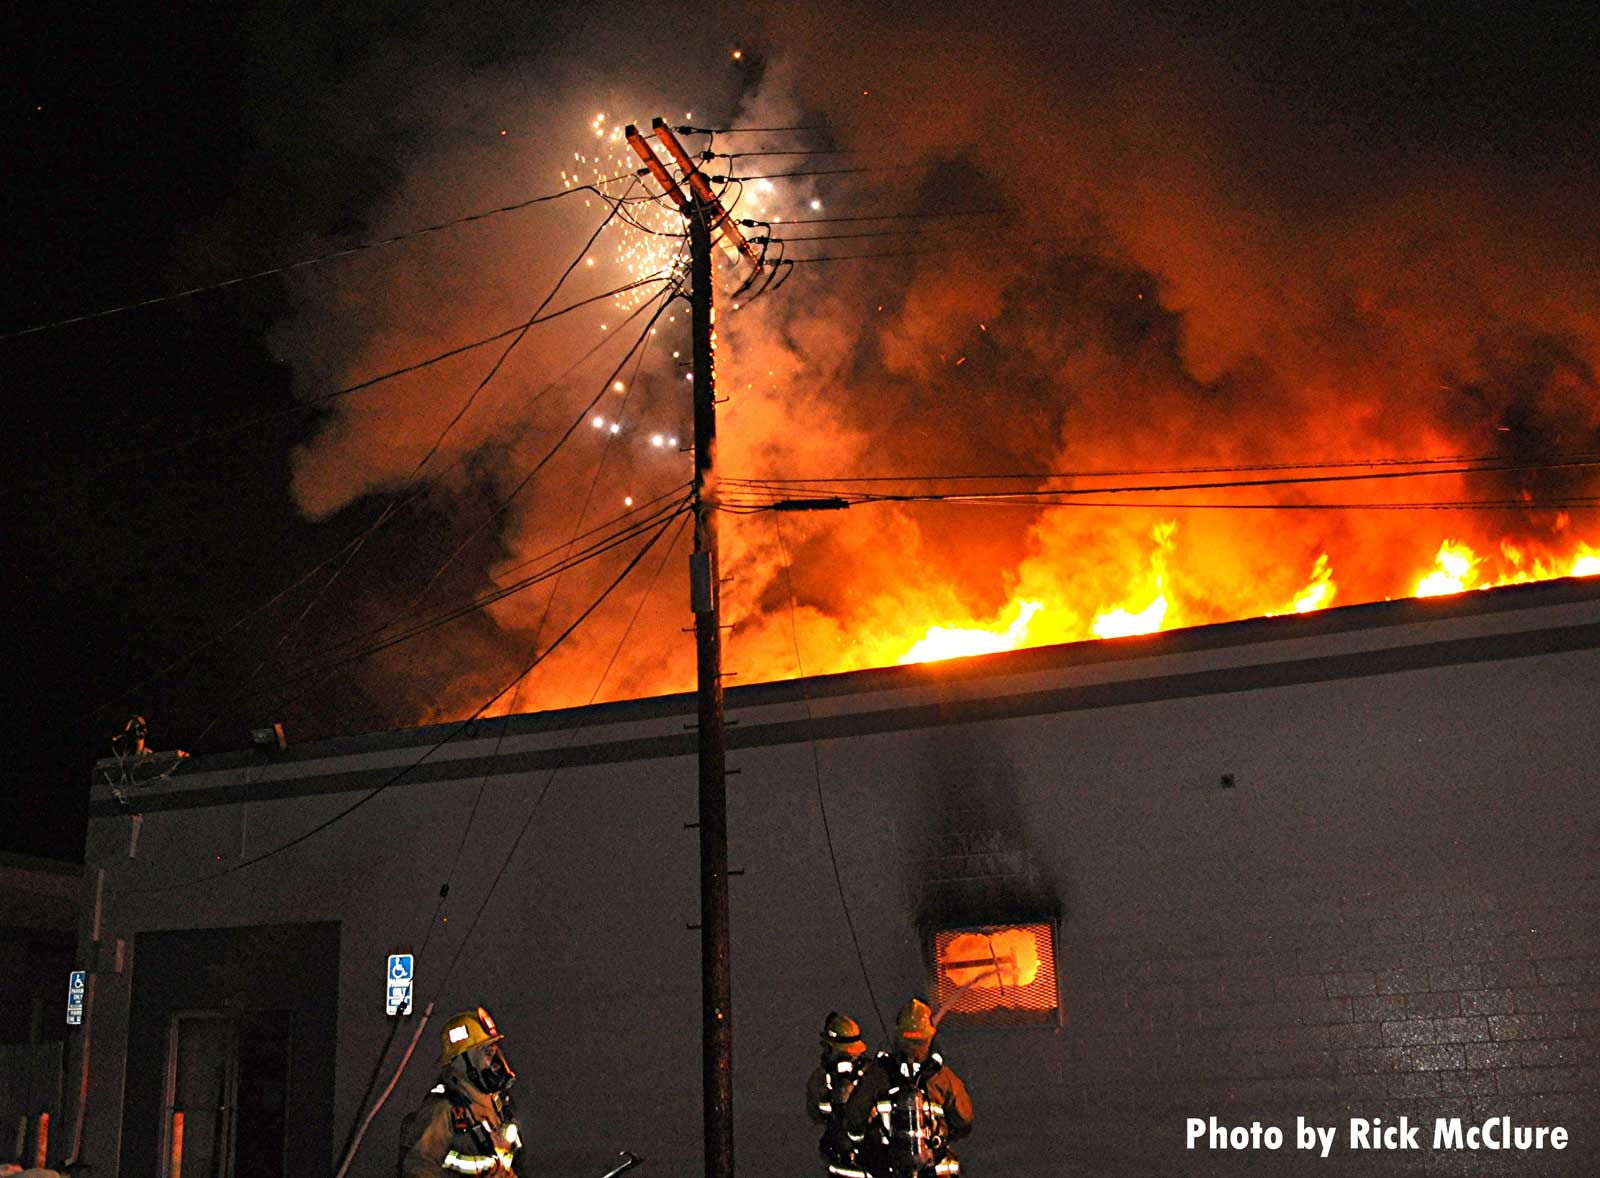 Fire through the roof of the building